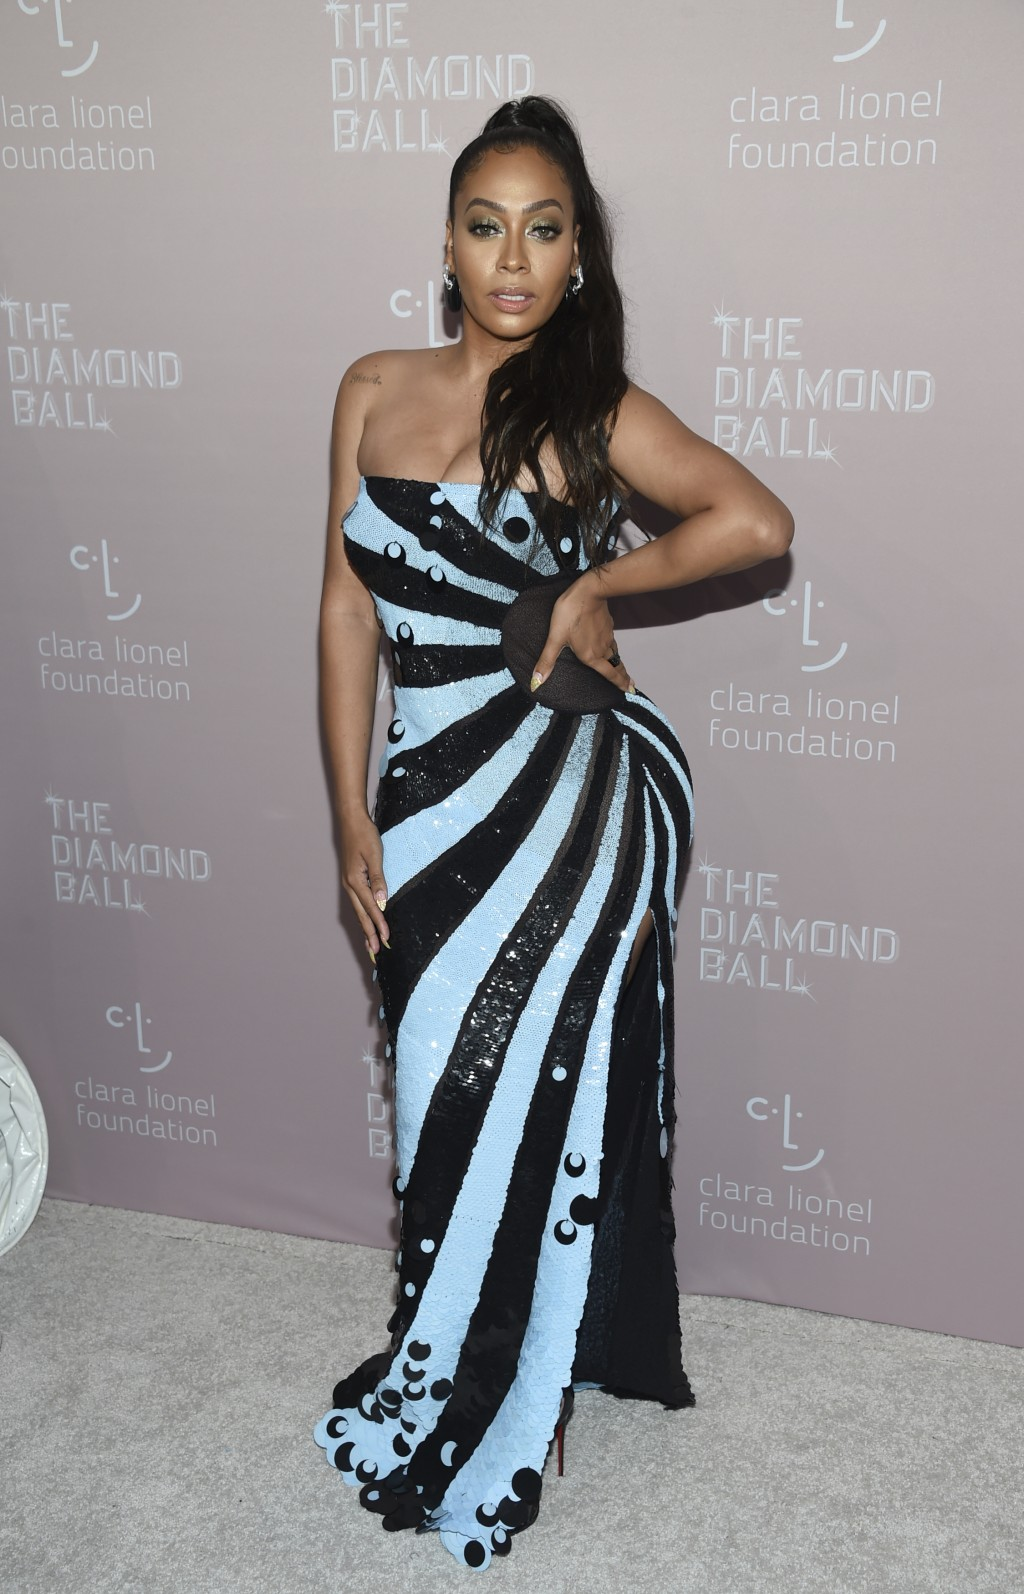 La La Anthony attends the 4th annual Diamond Ball at Cipriani Wall Street on Thursday, Sept. 13, 2018, in New York. (Photo by Evan Agostini/Invision/A...